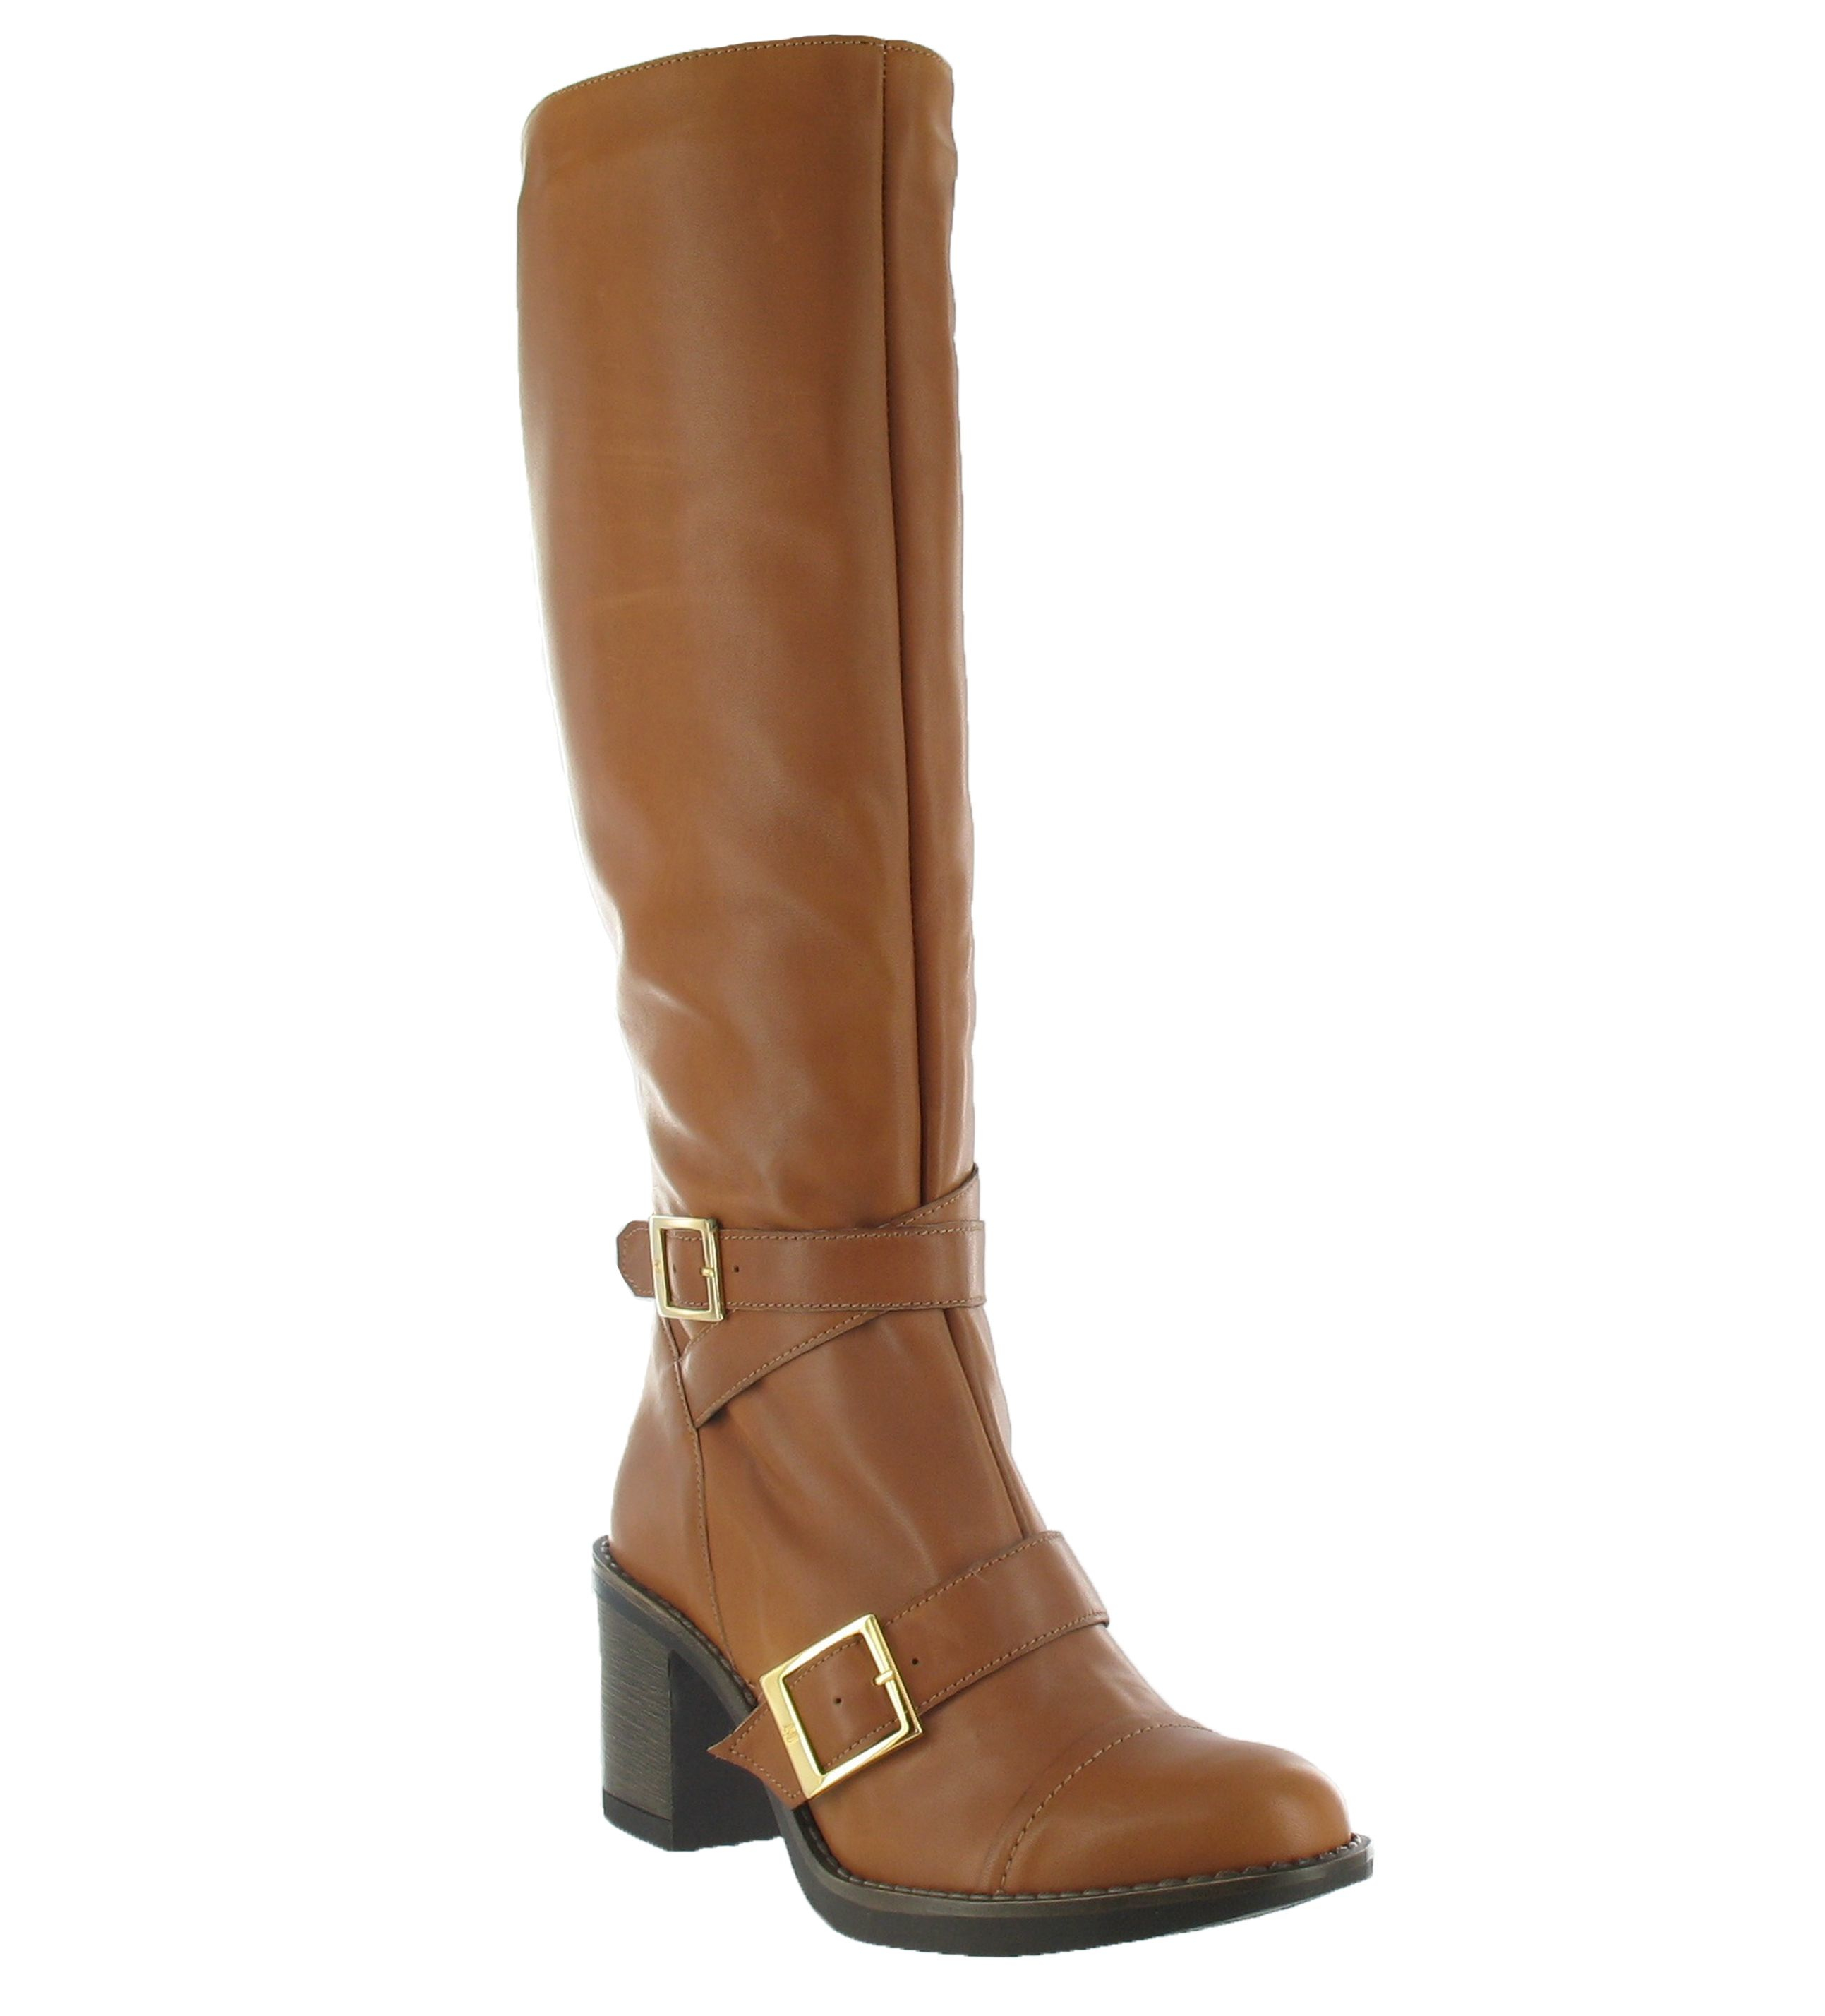 marta jonsson knee high boot with a mid heel in brown lyst